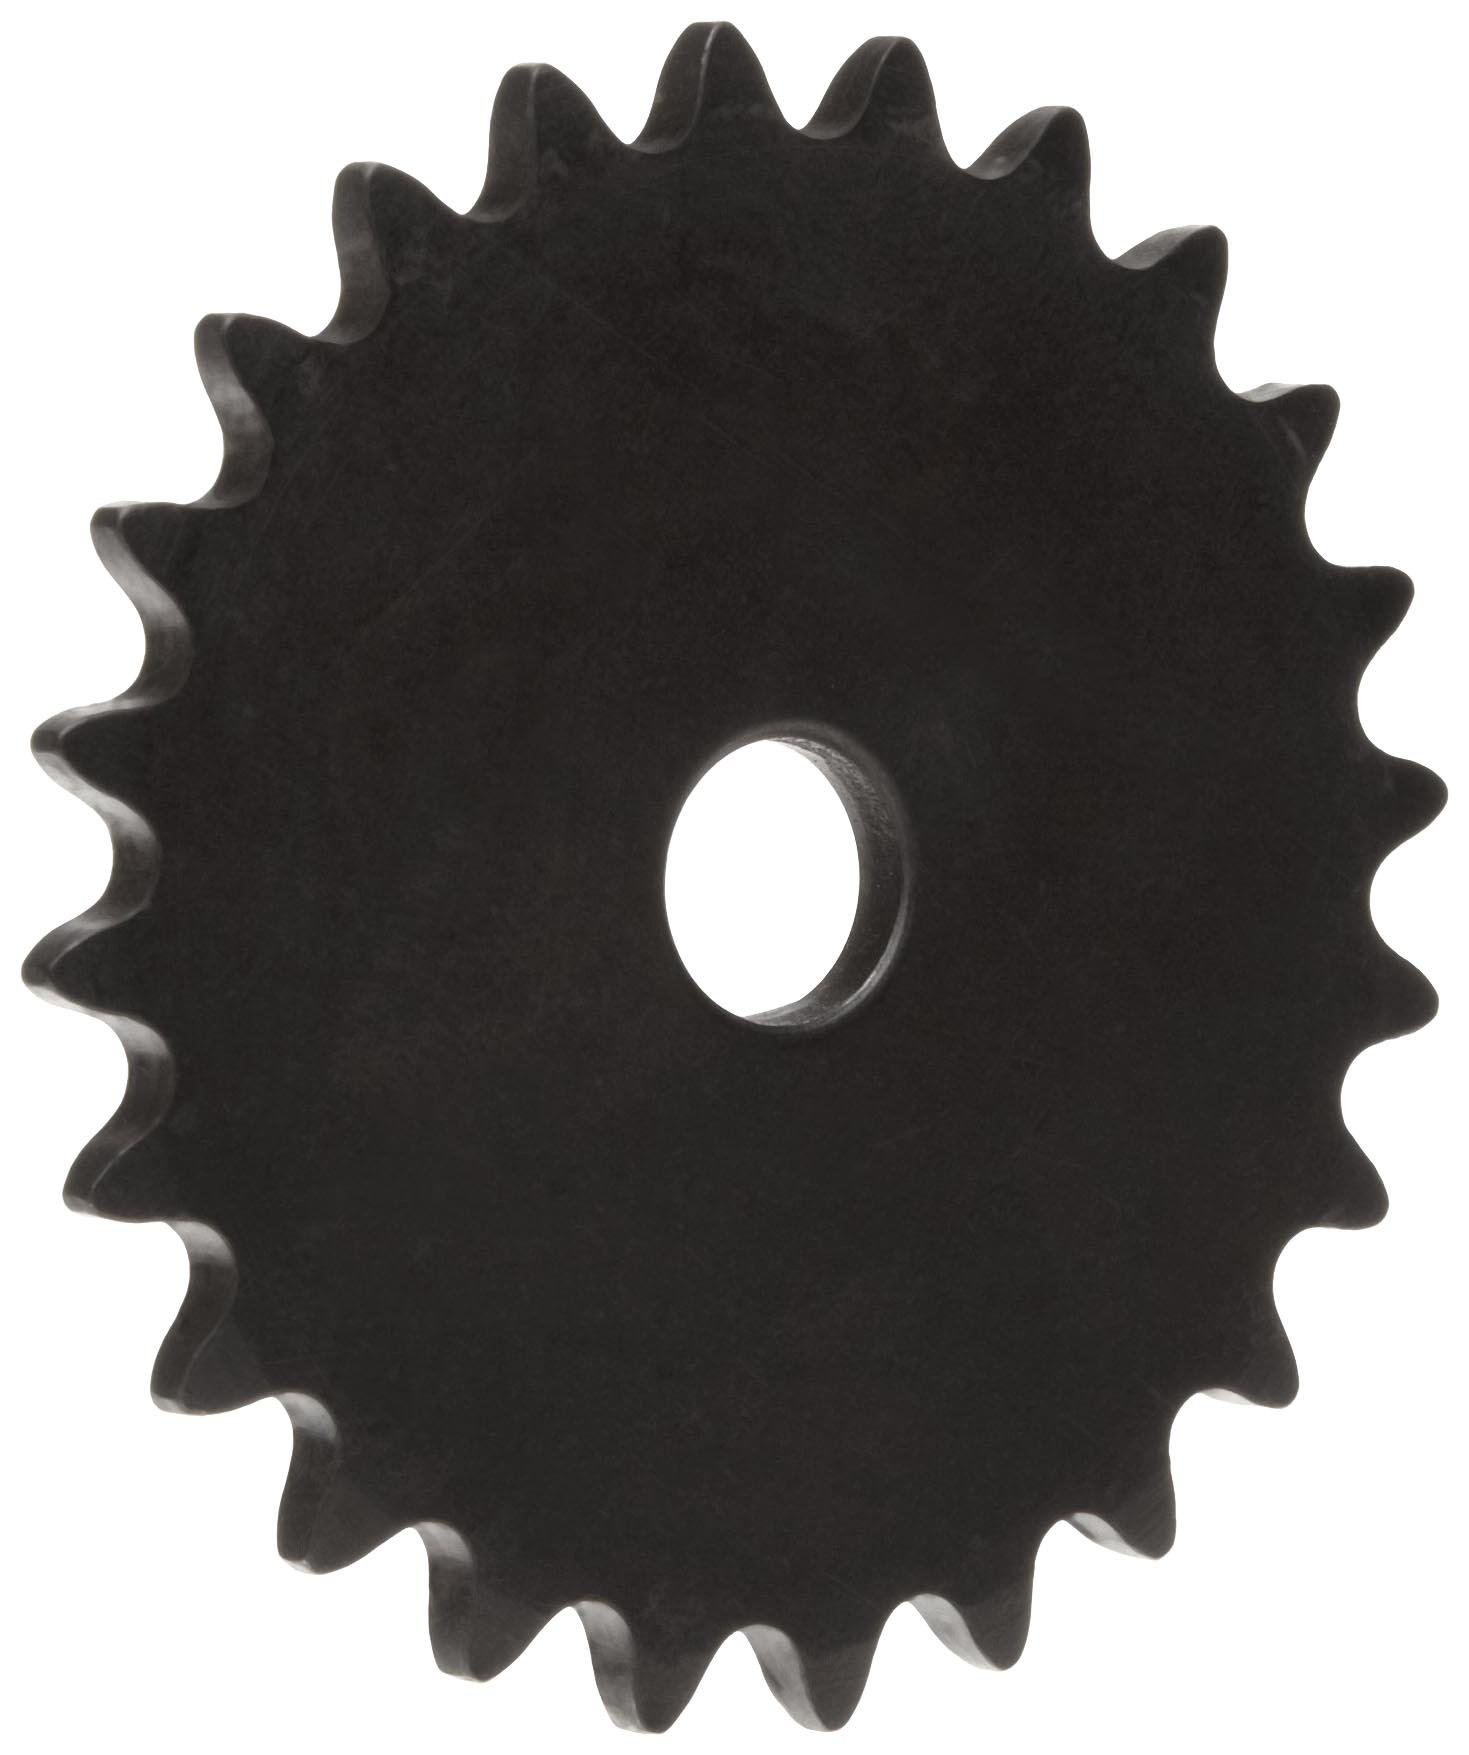 Martin Roller Chain Sprocket, Reboreable, Type A Hub, Single Strand, 35 Chain Size, 0.375'' Pitch, 28 Teeth, 0.5'' Bore Dia., 3.55'' OD, 0.168'' Width